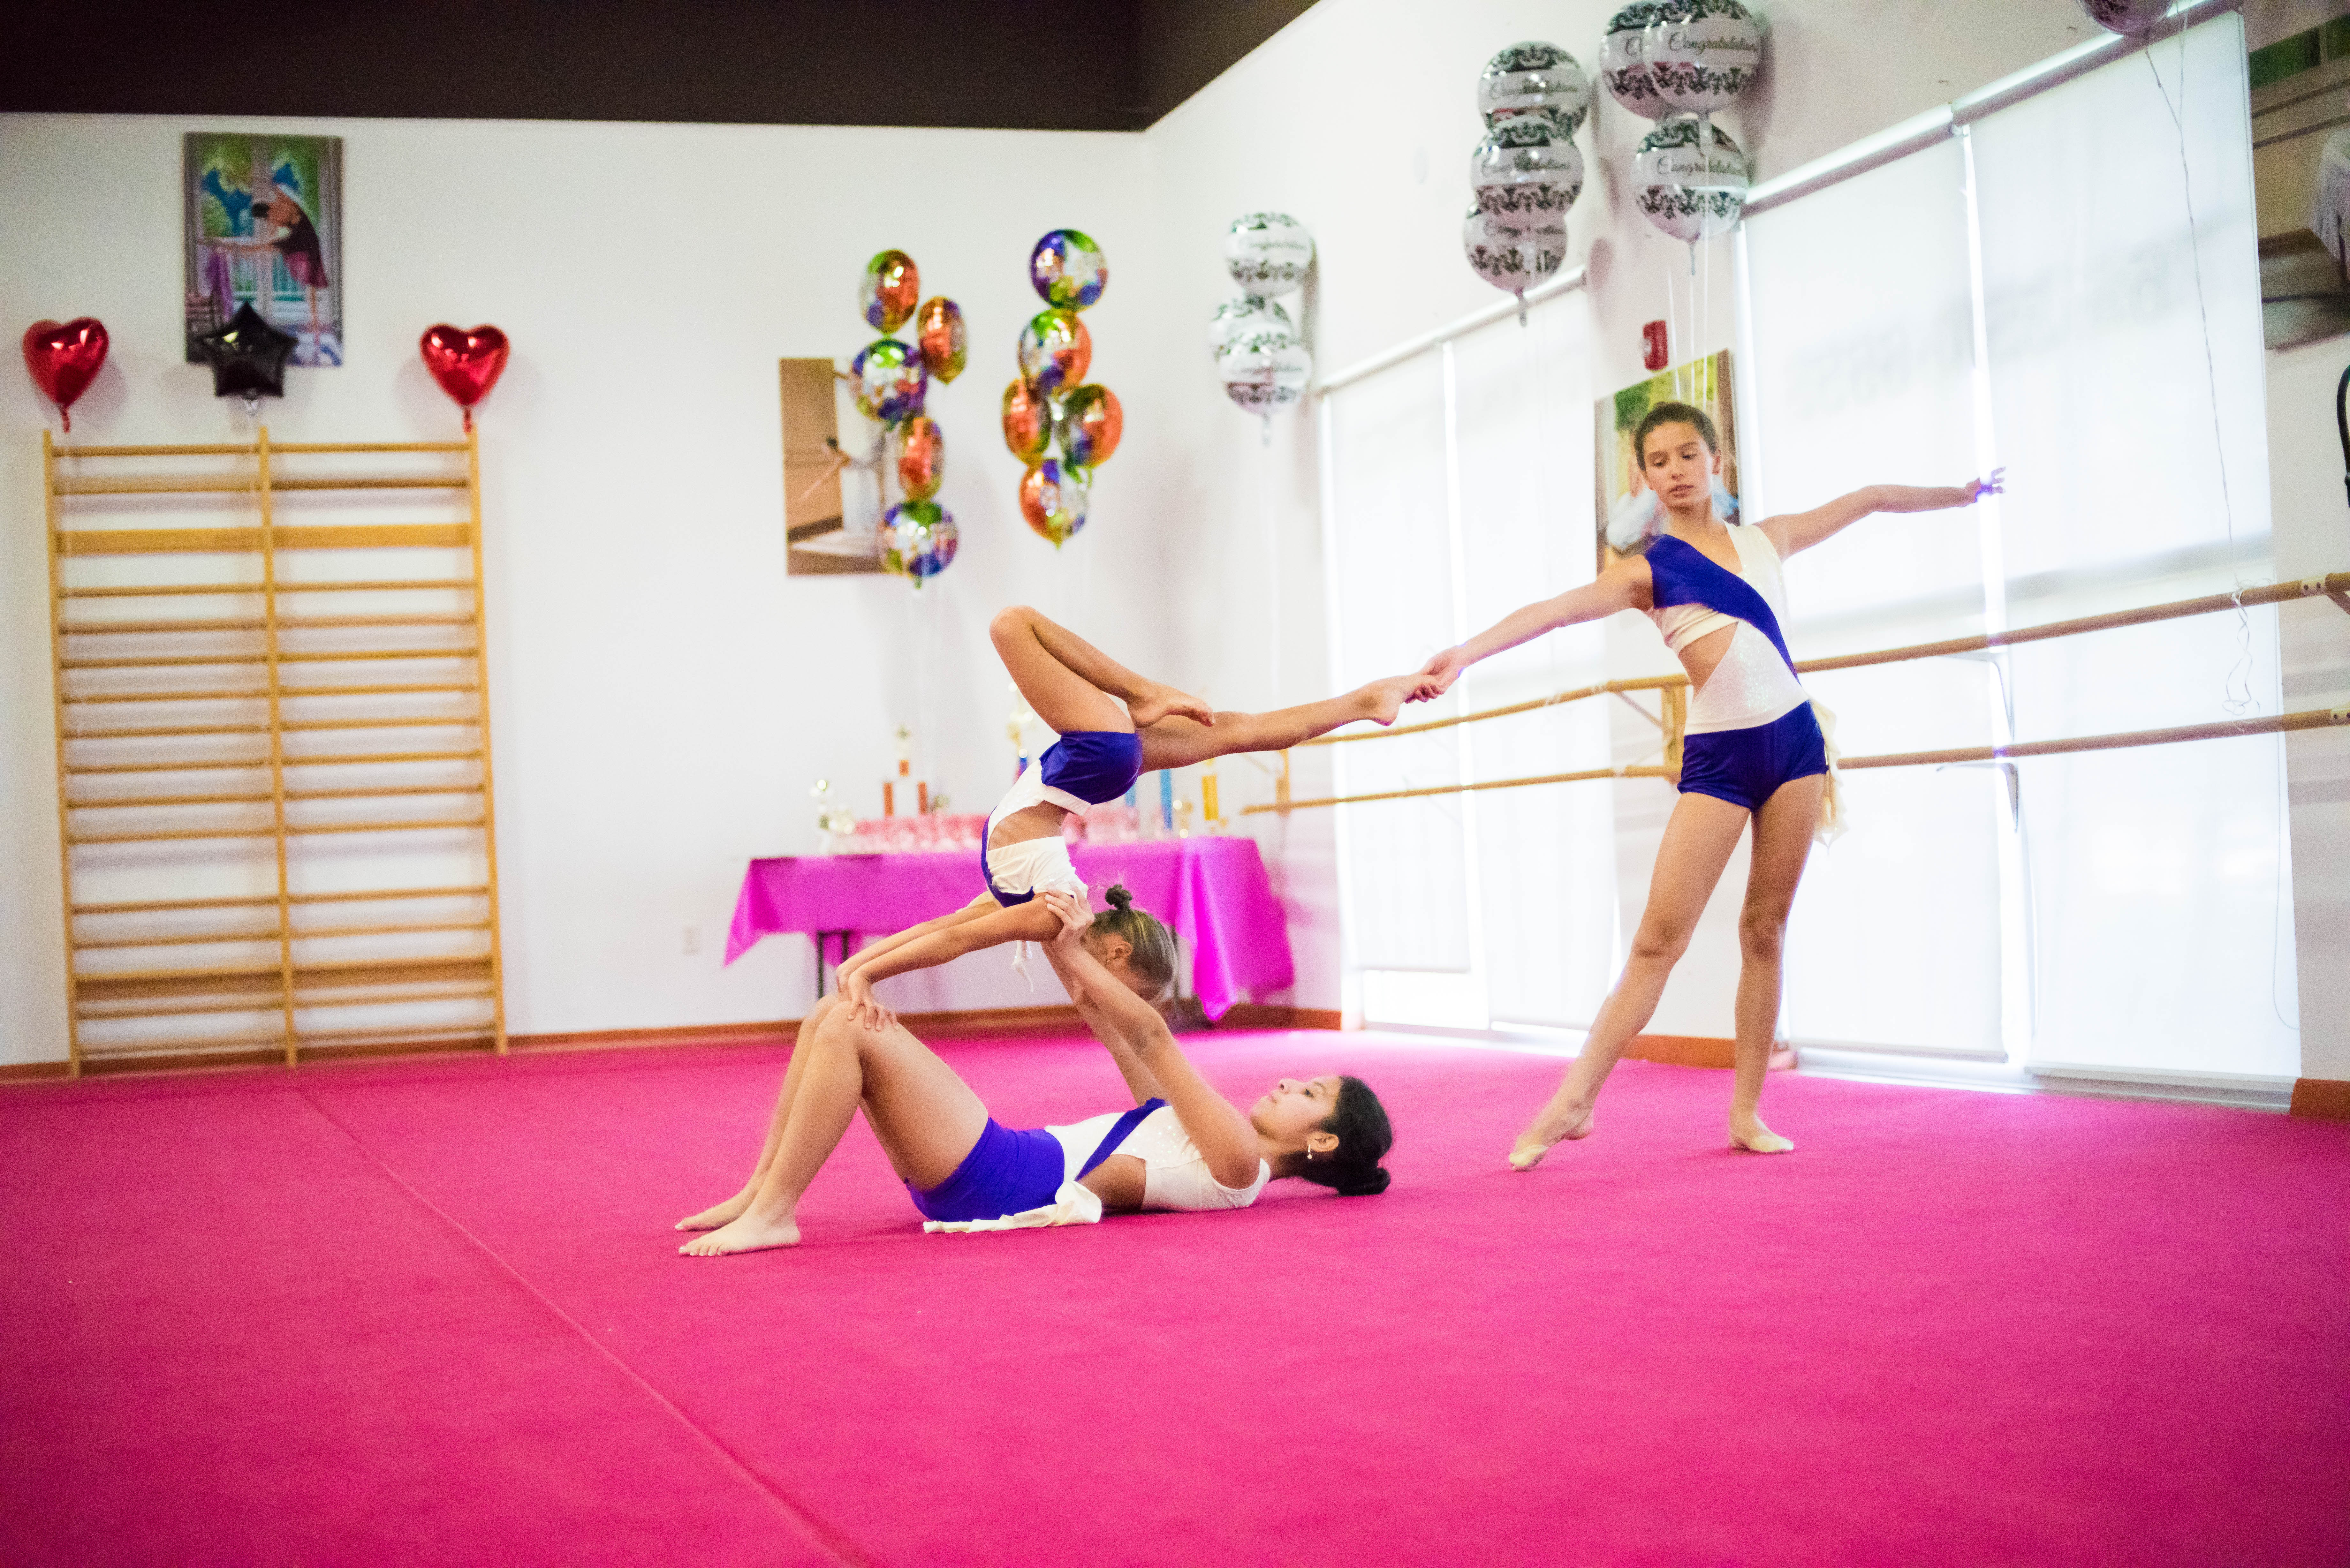 kids acrobatics miami, kids acrobatics classes in Miami, kids acro classes, kids acrobatics, sport acrobatics, acrobatic gymnastics classes, acrobatics miami